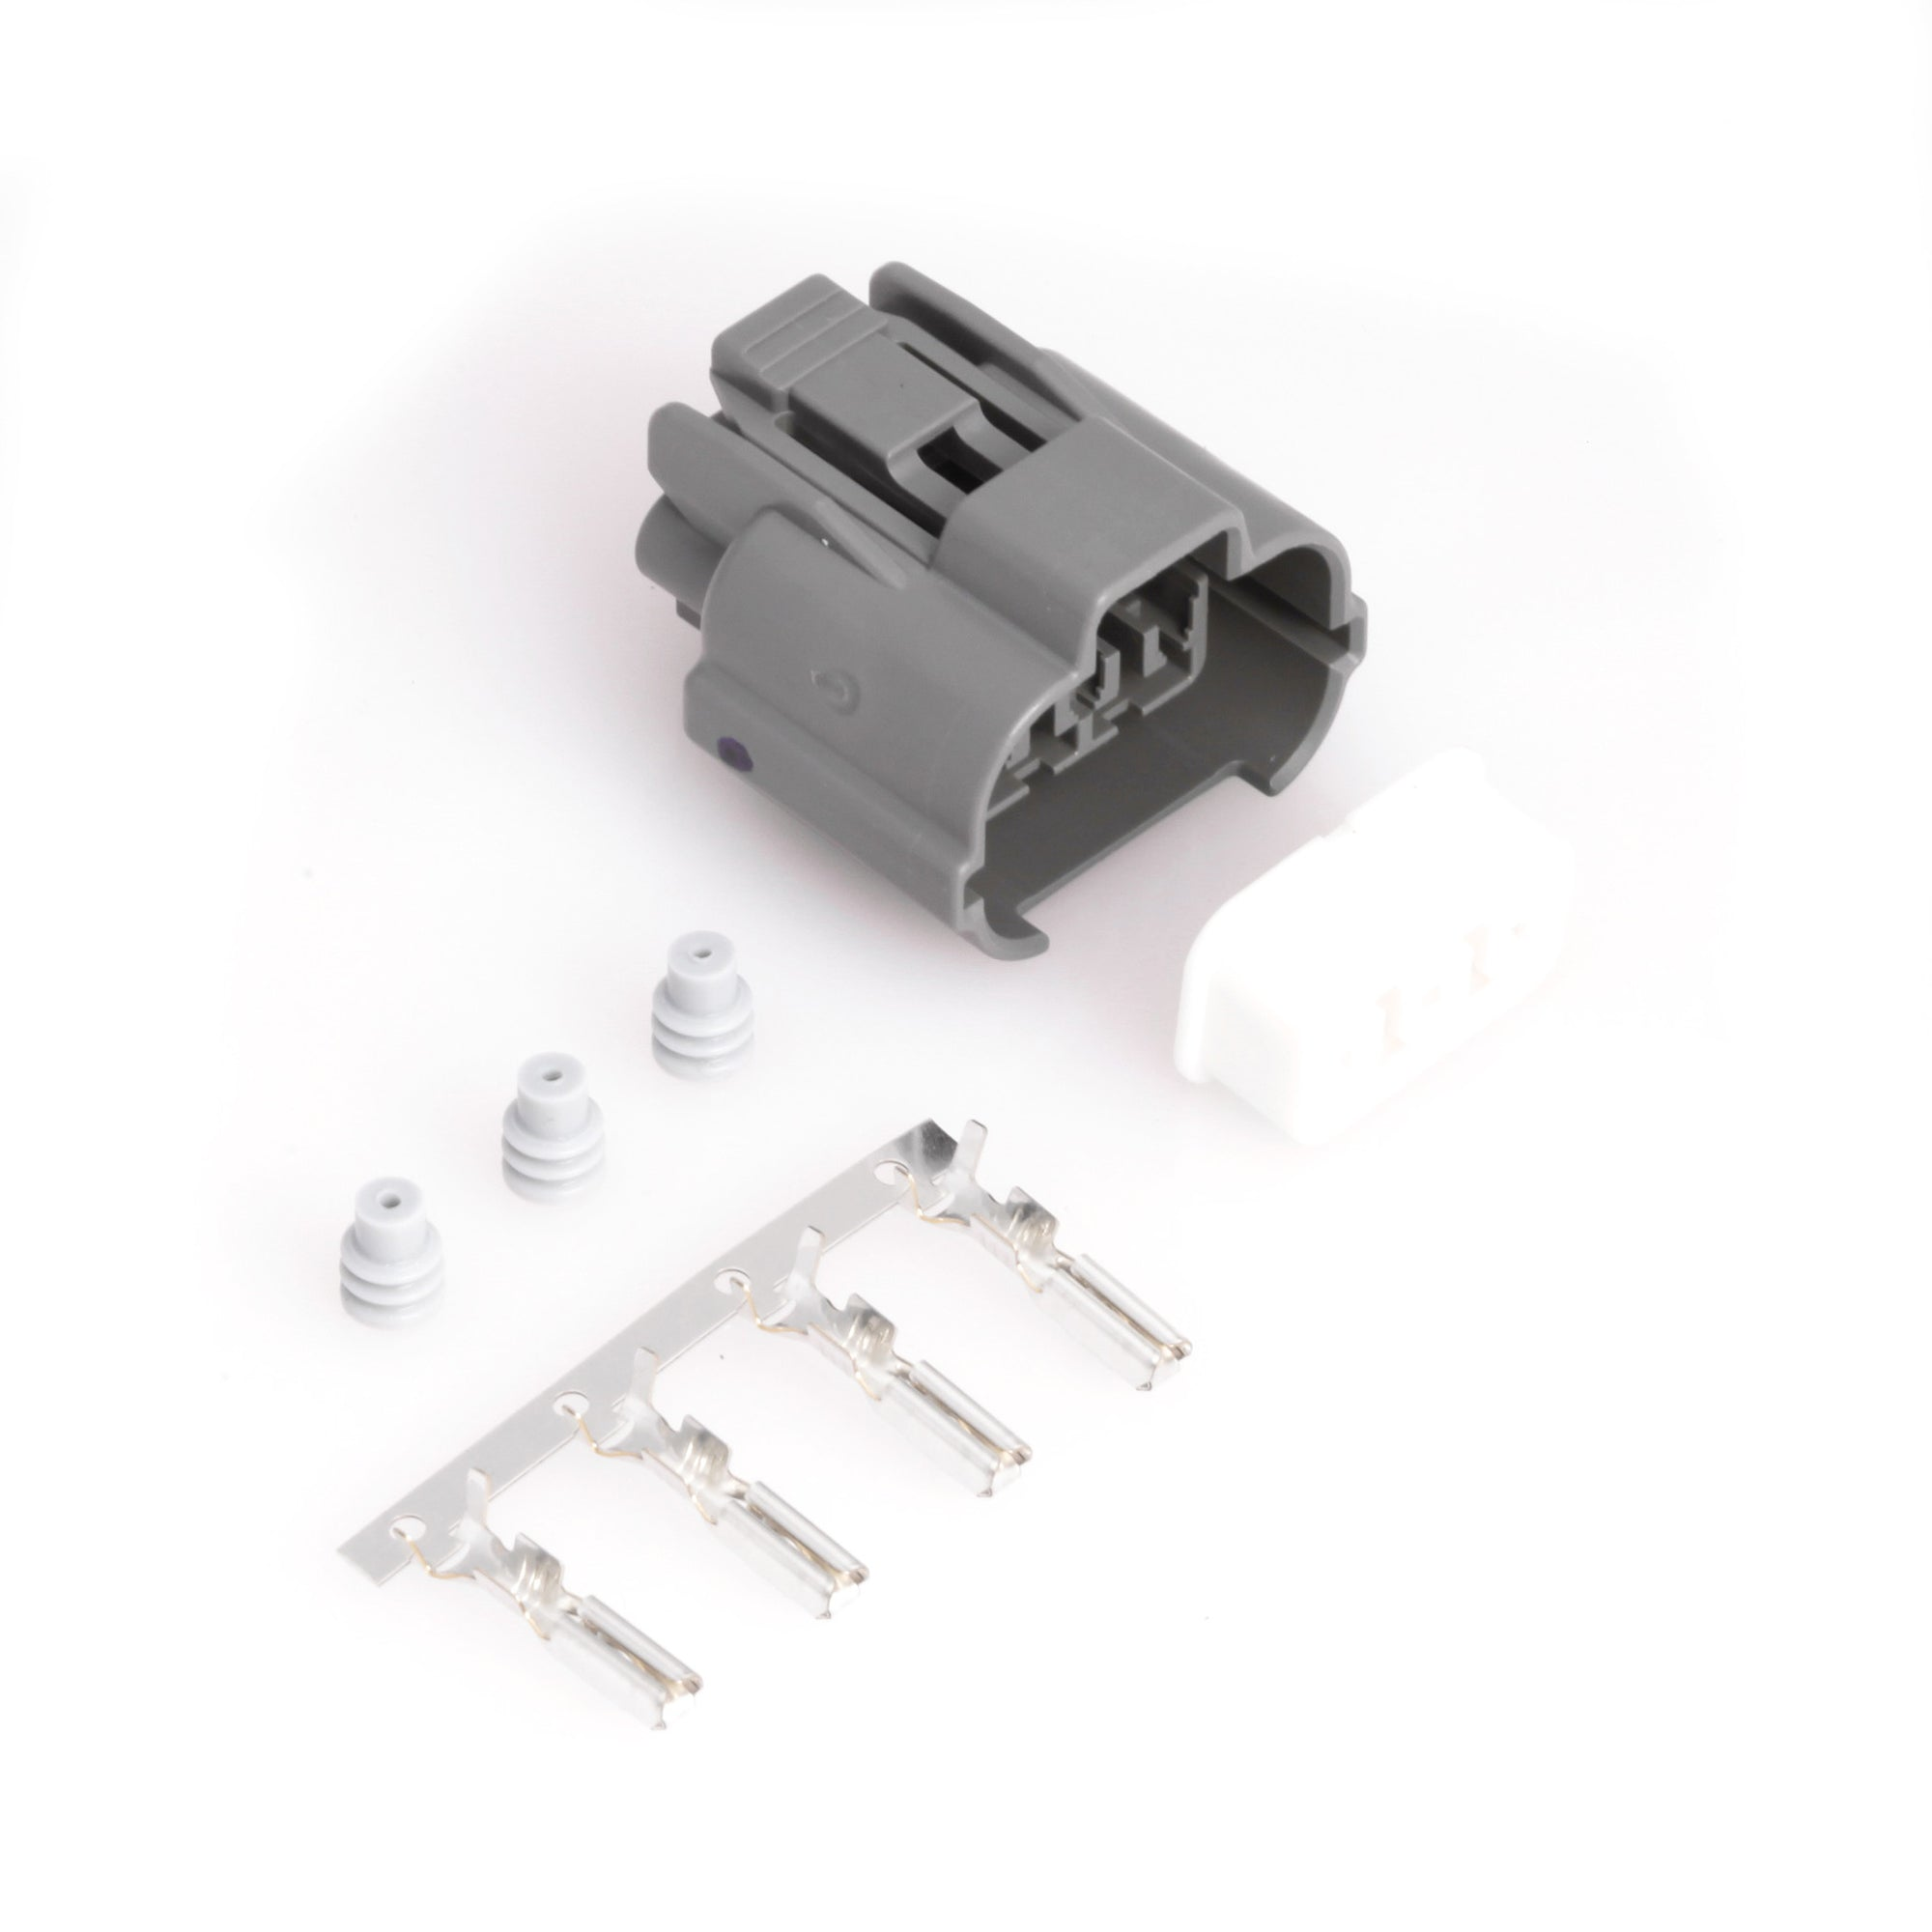 Connectors - Honda 3-Position Flat Connector Kit